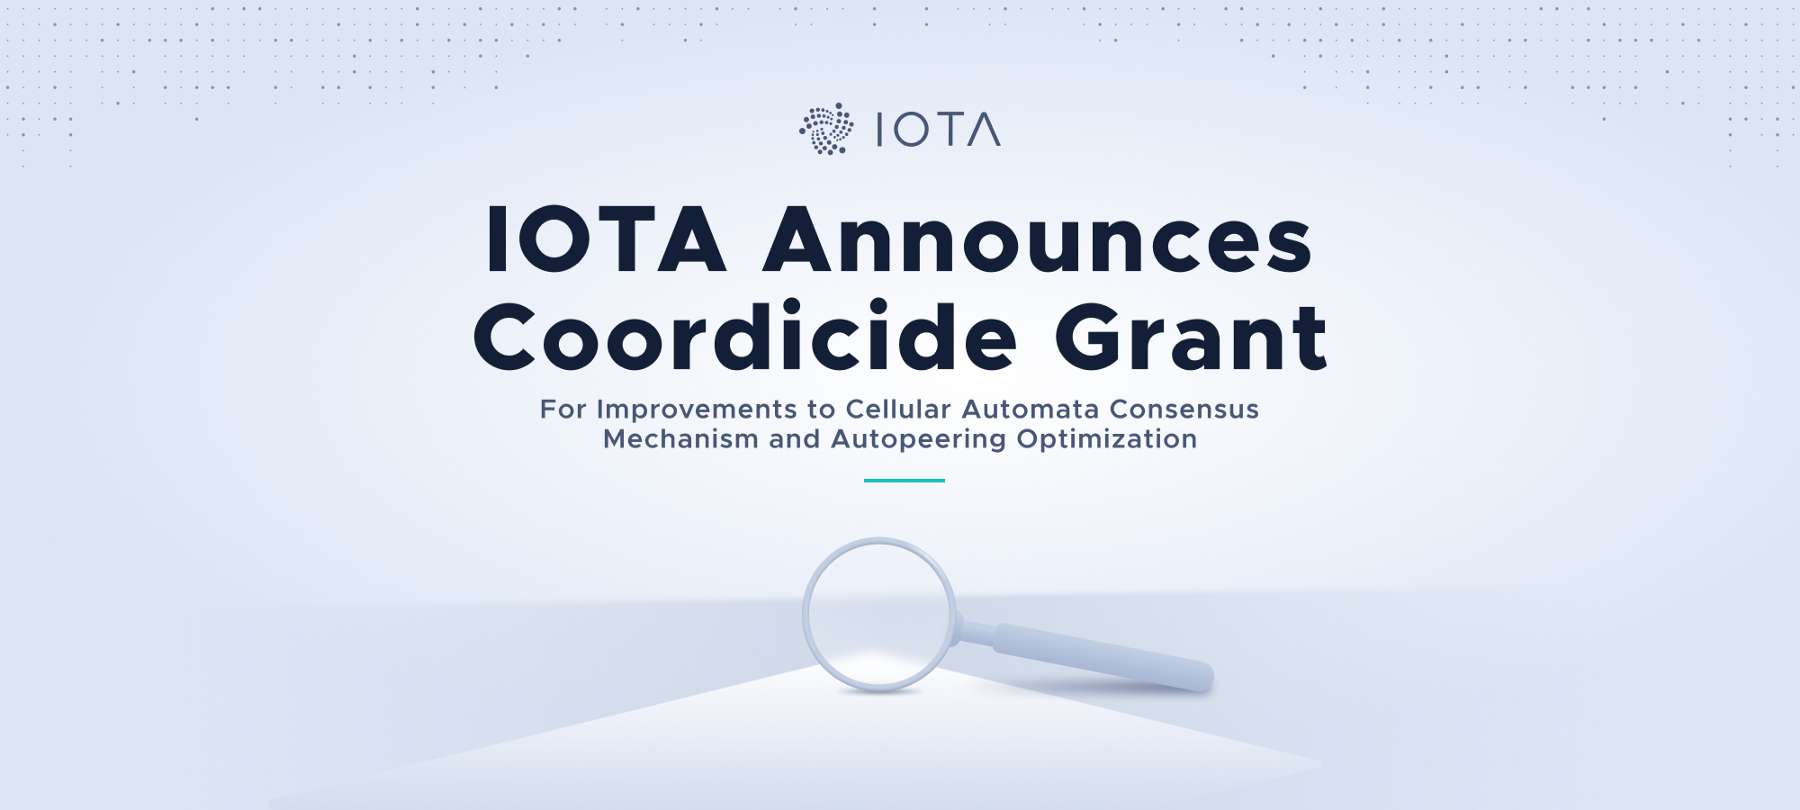 IOTA Announces Coordicide Grant for Improvements to Cellular Automata Consensus Mechanism and Autopeering Optimization